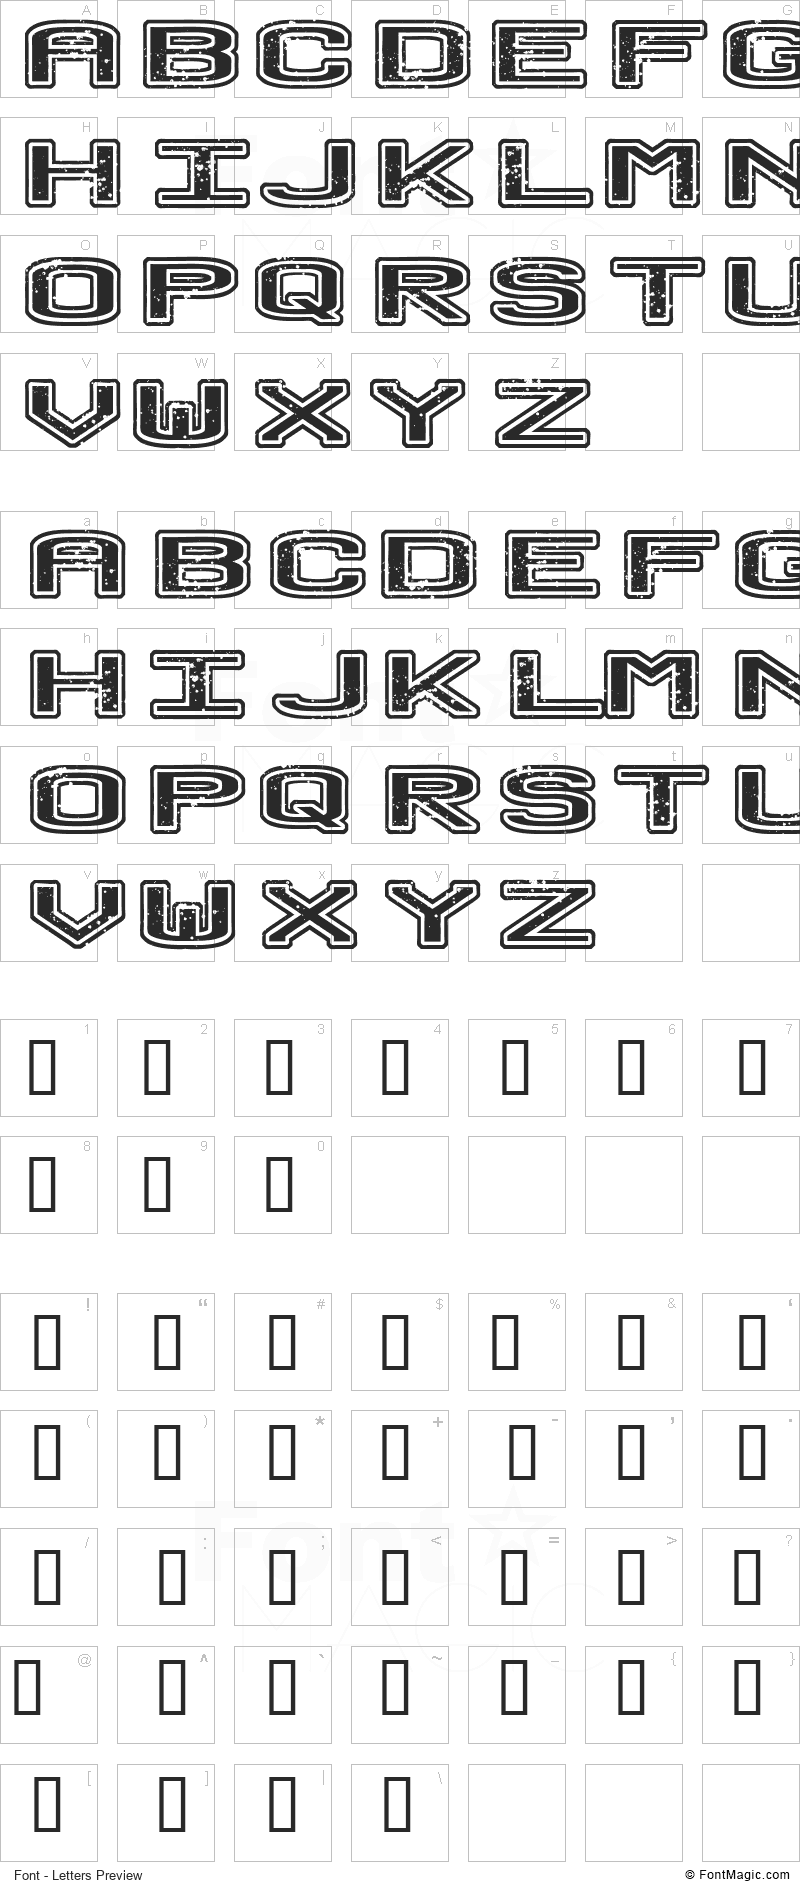 No Honor Roll Font - All Latters Preview Chart